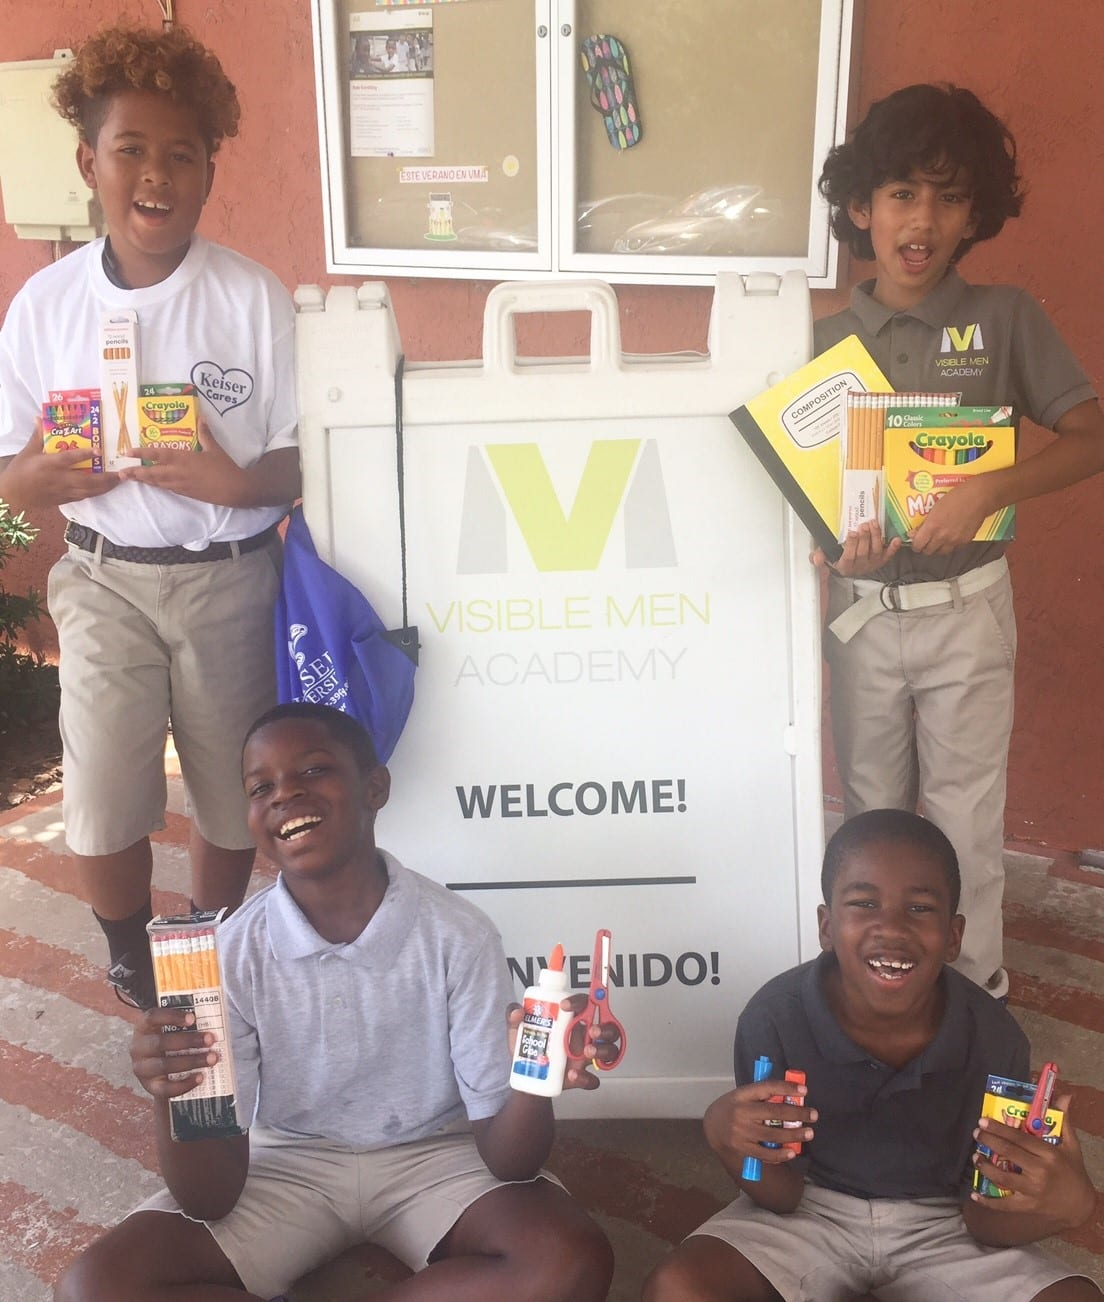 The Sarasota Campus Donates School Supplies to Visible Men Academy